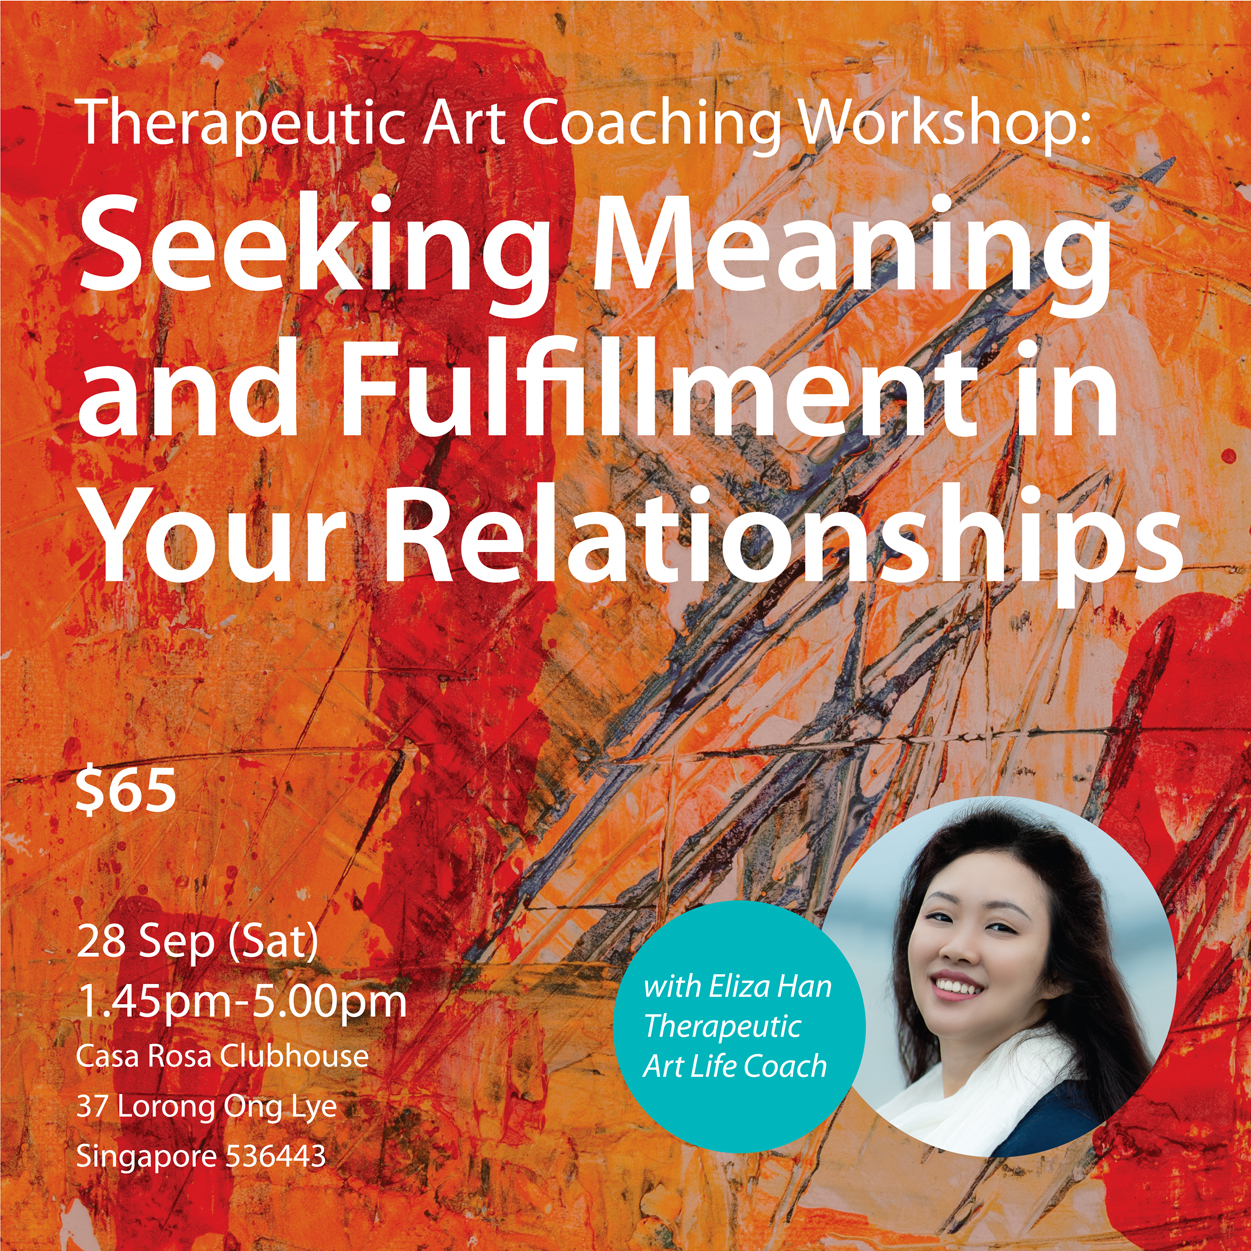 Therapeutic Art Coaching Workshop3.jpg